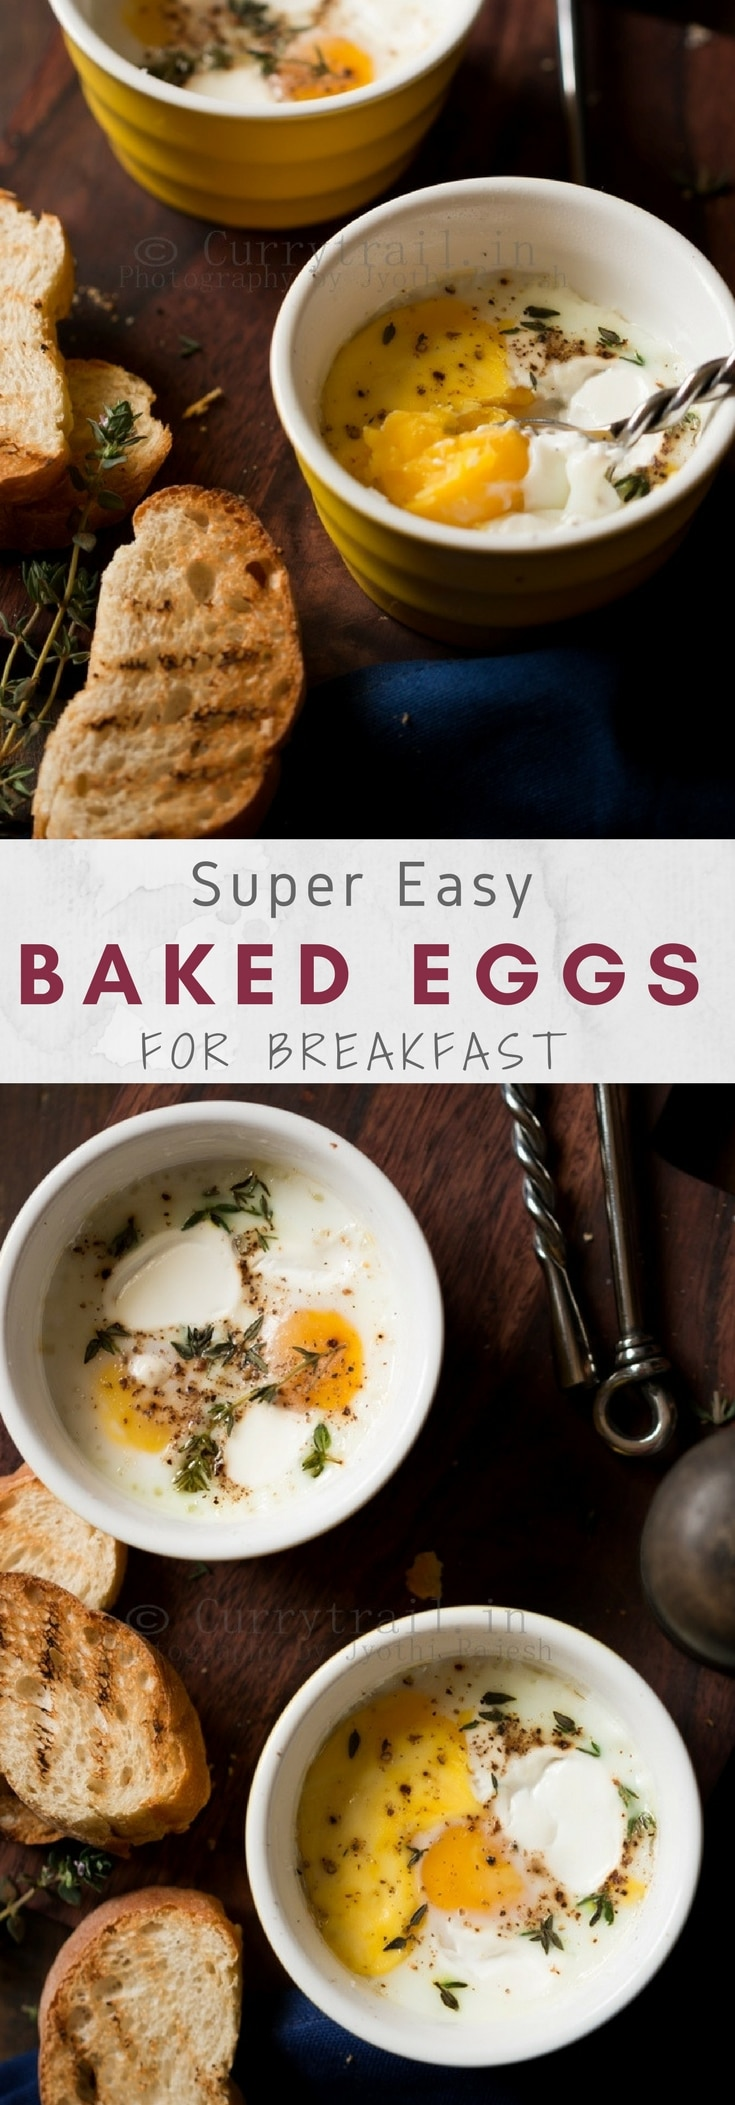 Baked Breakfast Eggs Pinterest Image